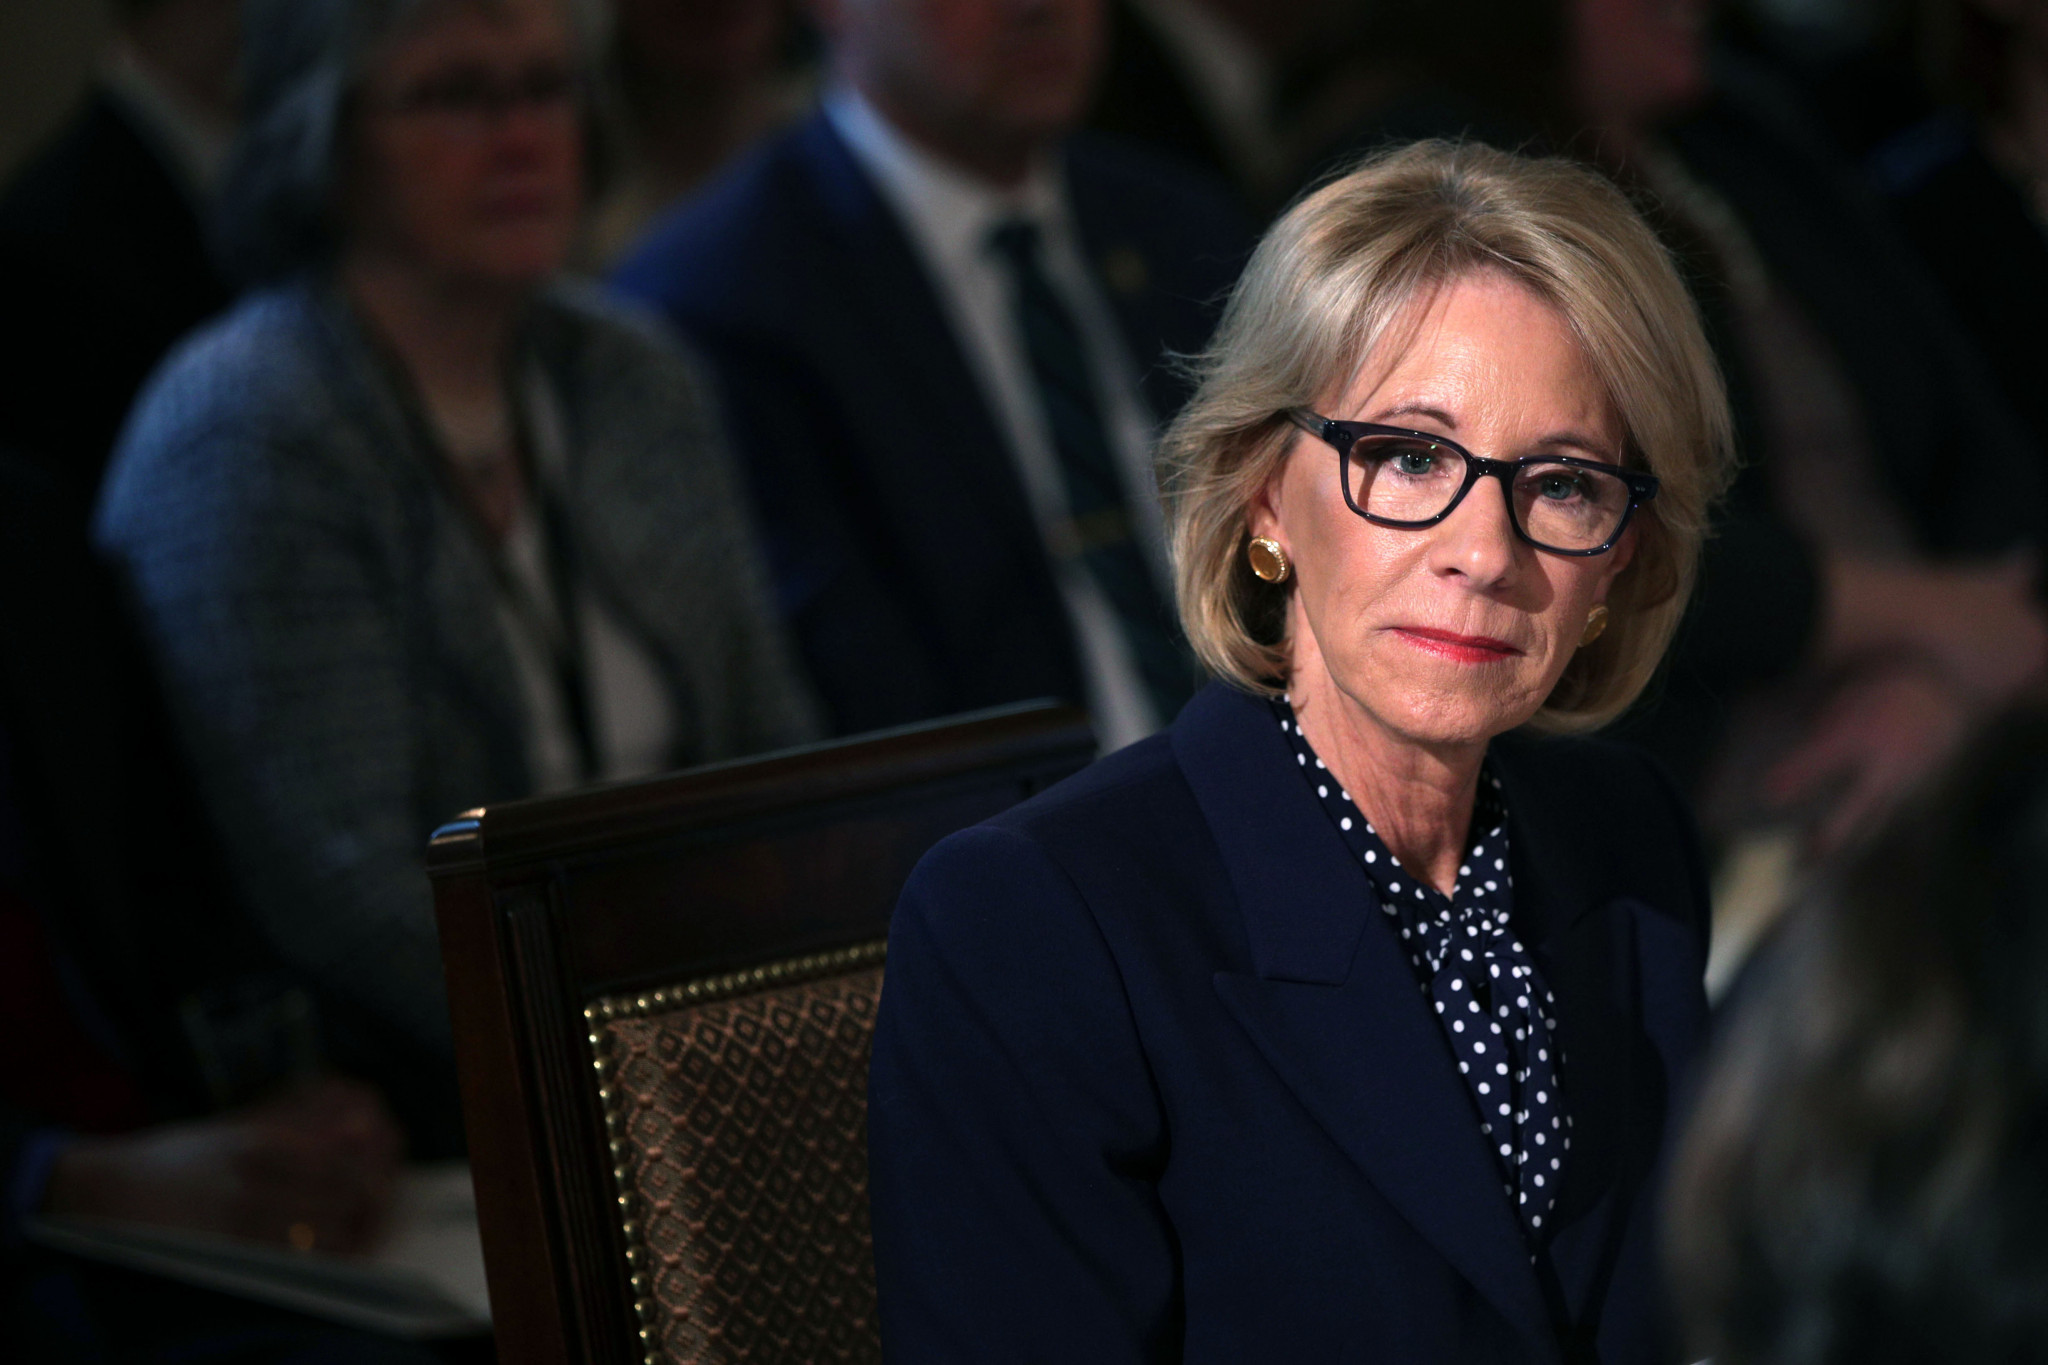 American Education Secretary criticised for proposed Special Olympics cuts